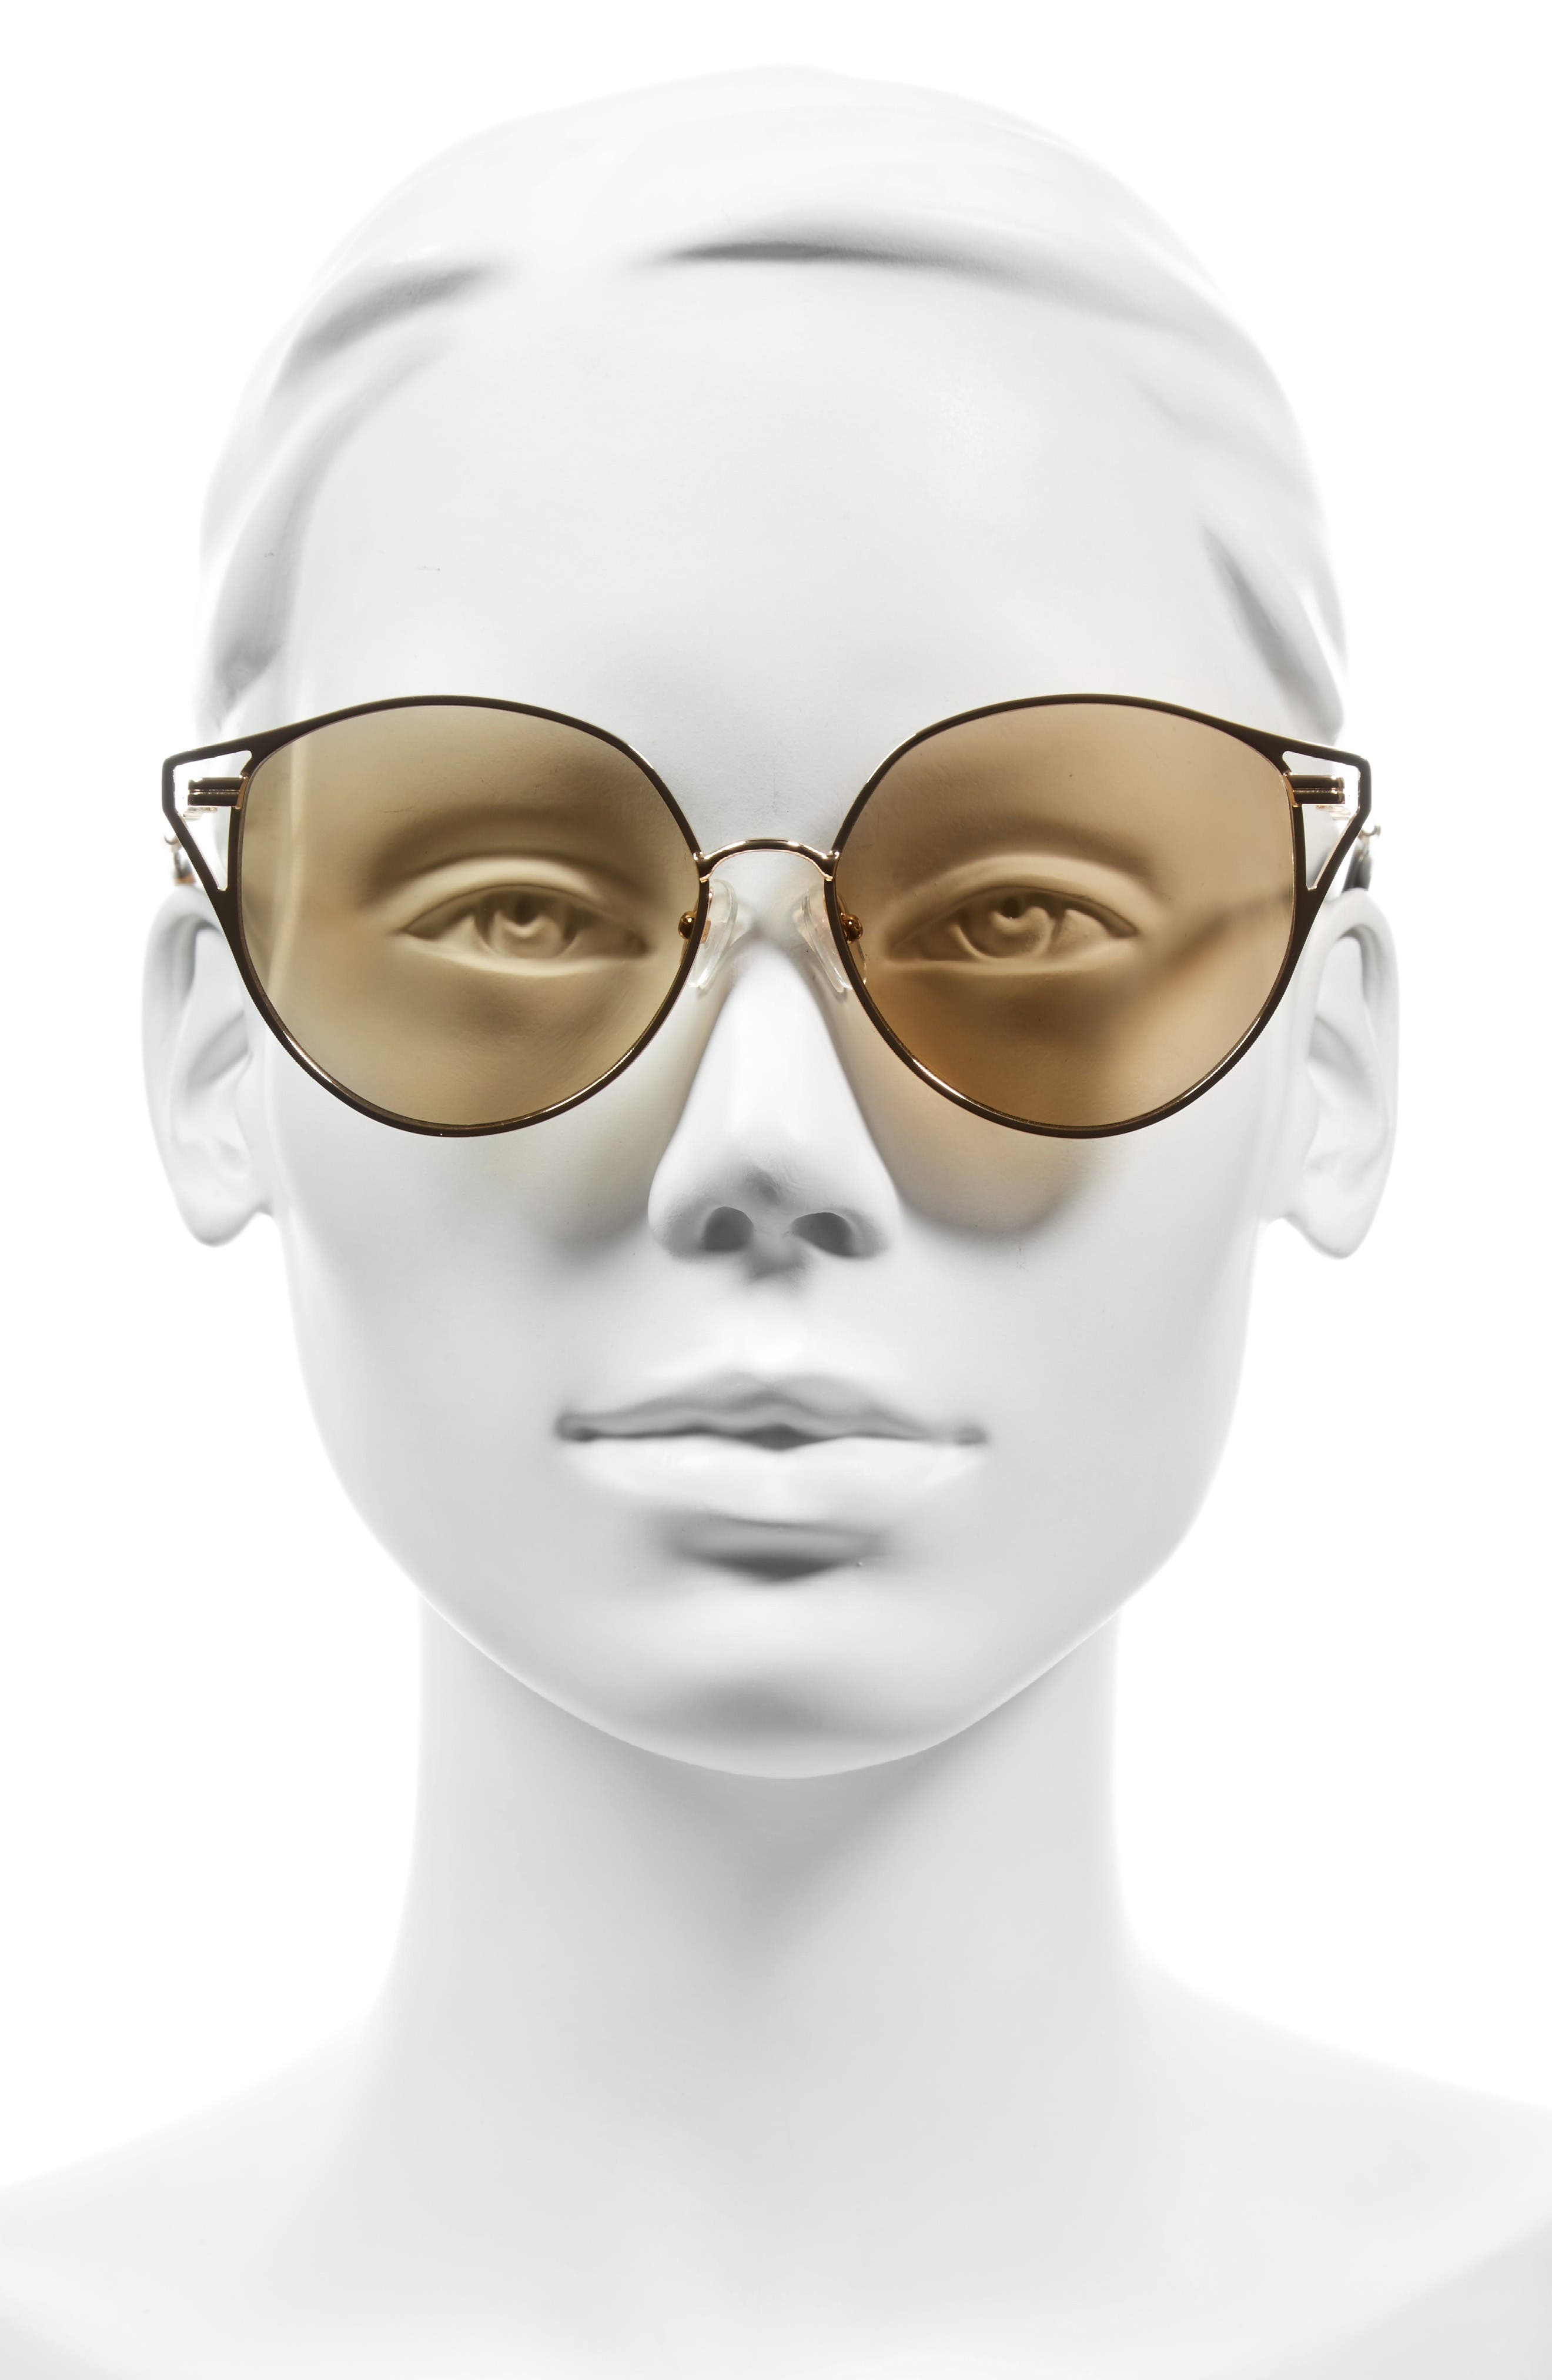 Ibiza 55mm Cat Eye Sunglasses,                             Alternate thumbnail 5, color,                             Gold Wire/ Amber Mirror